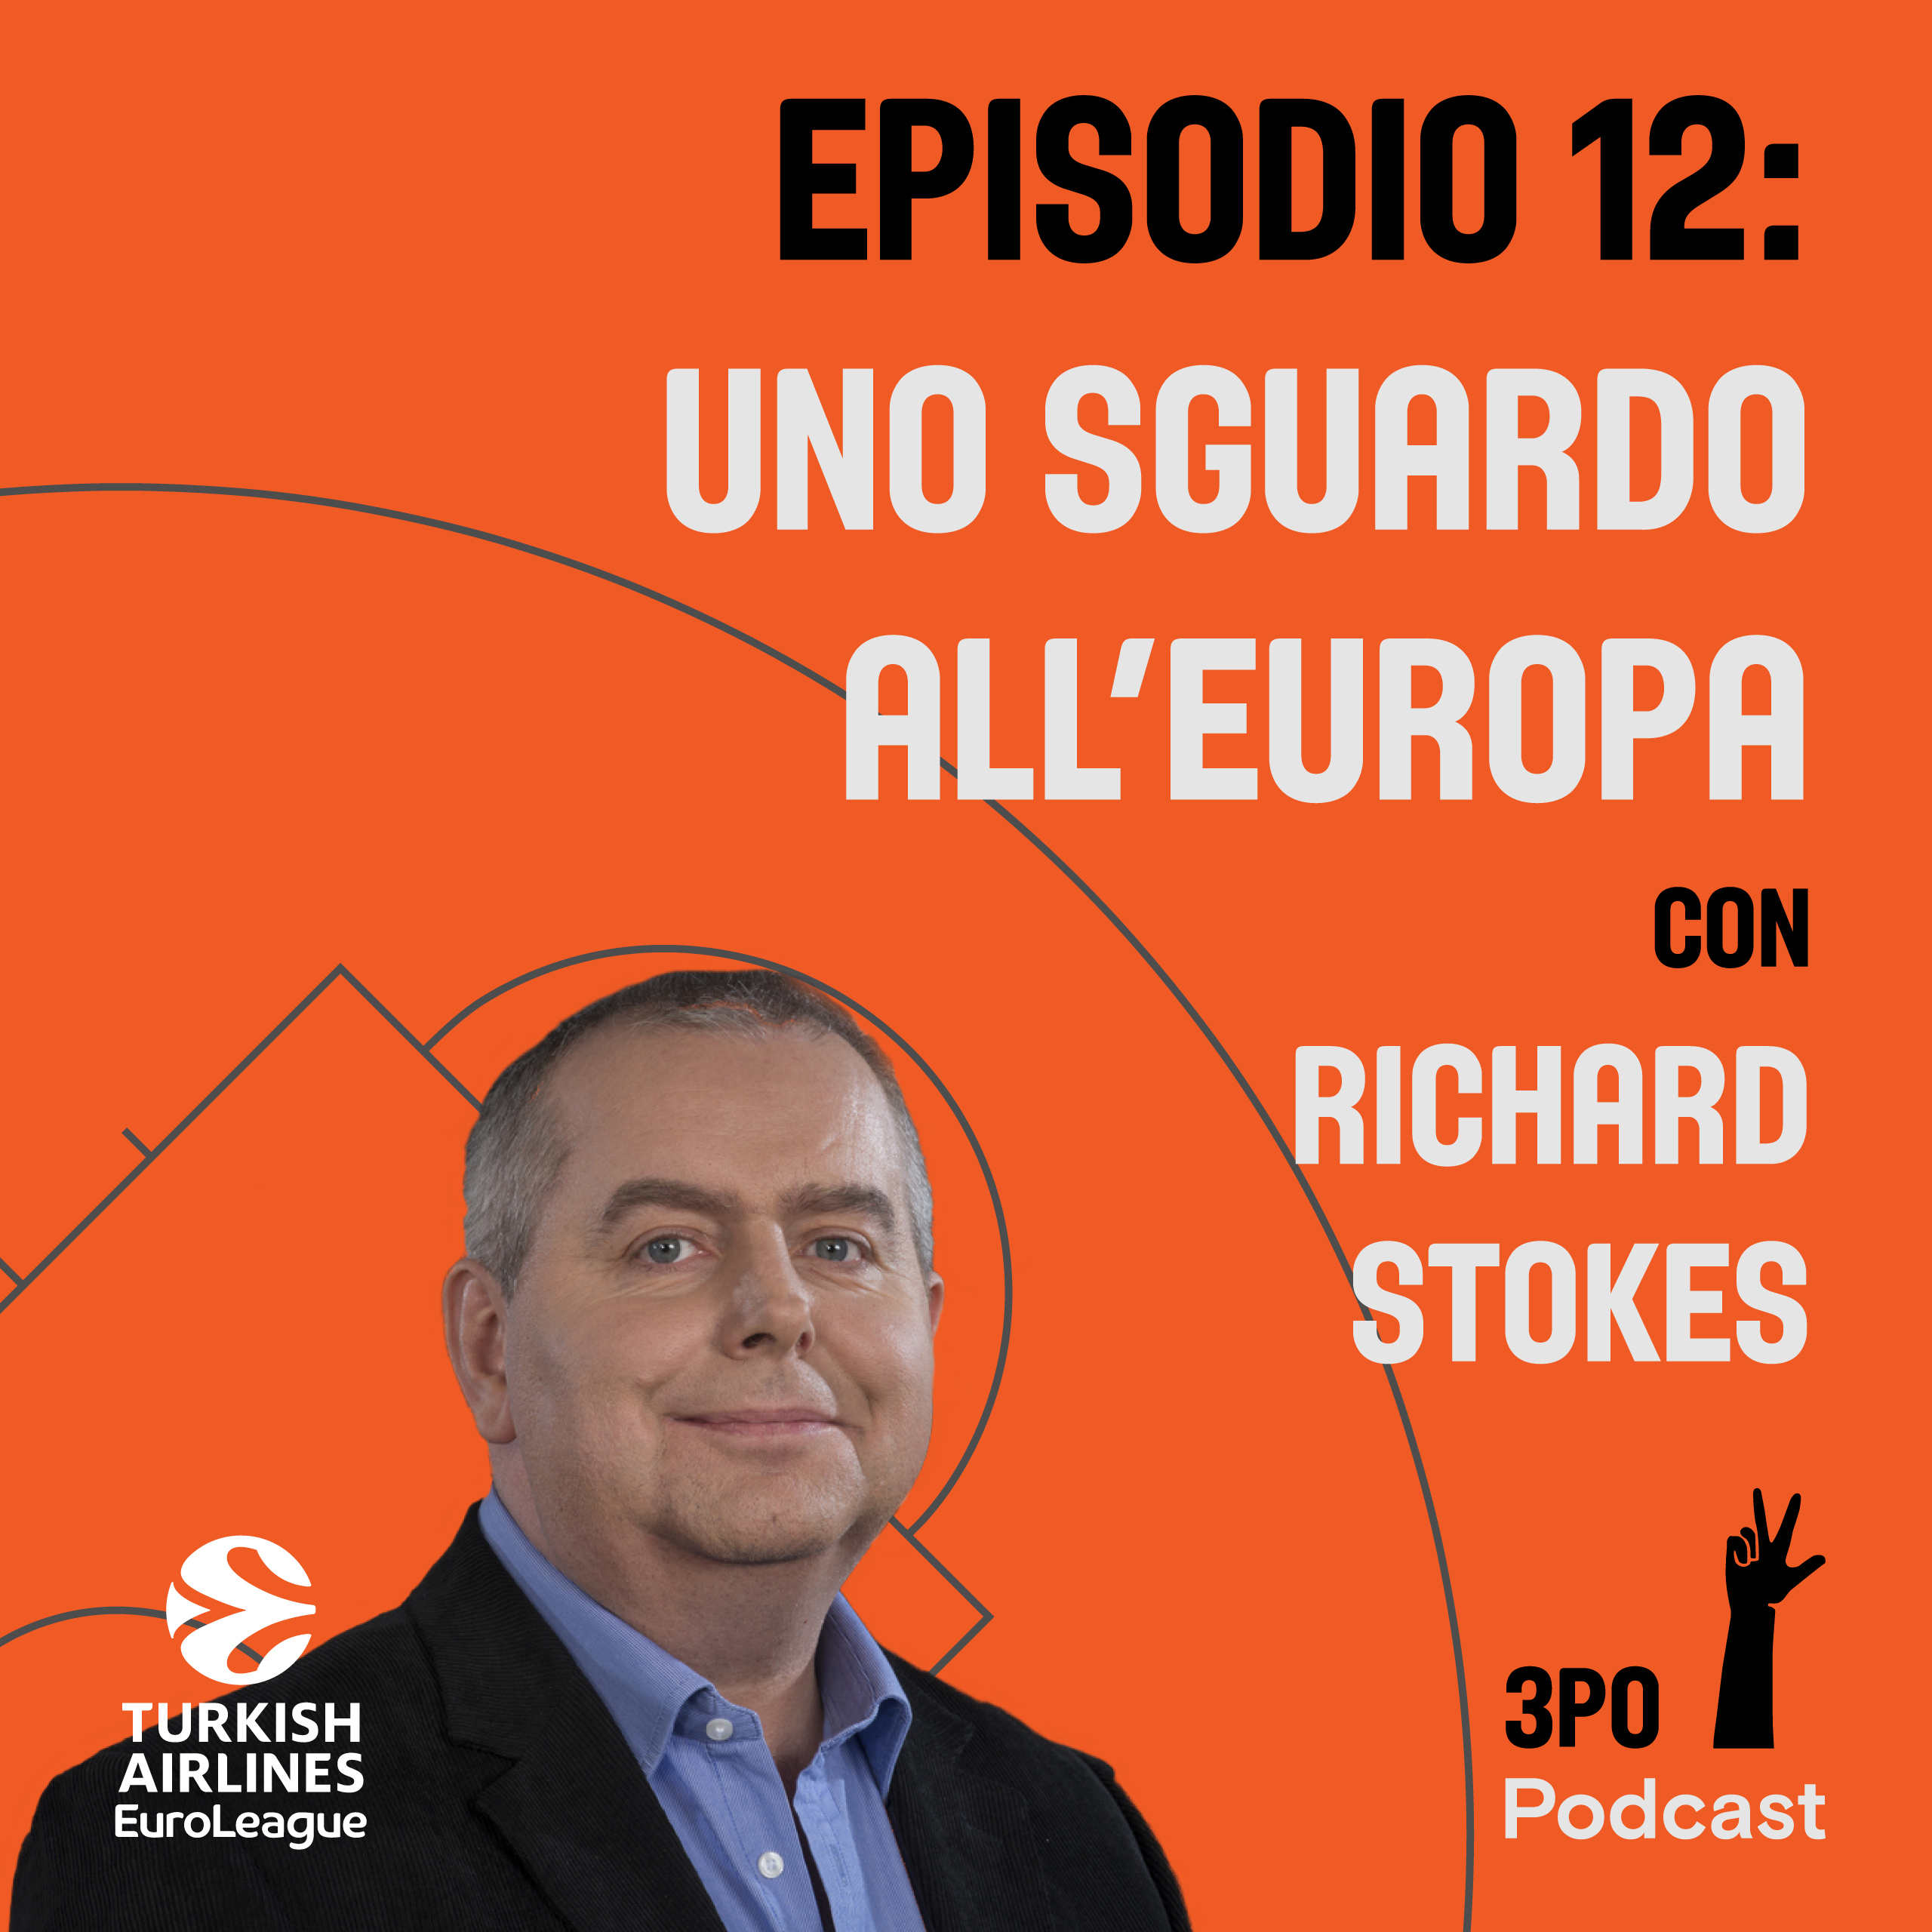 Episodio 12: Uno sguardo all'Europa con Richard Stokes